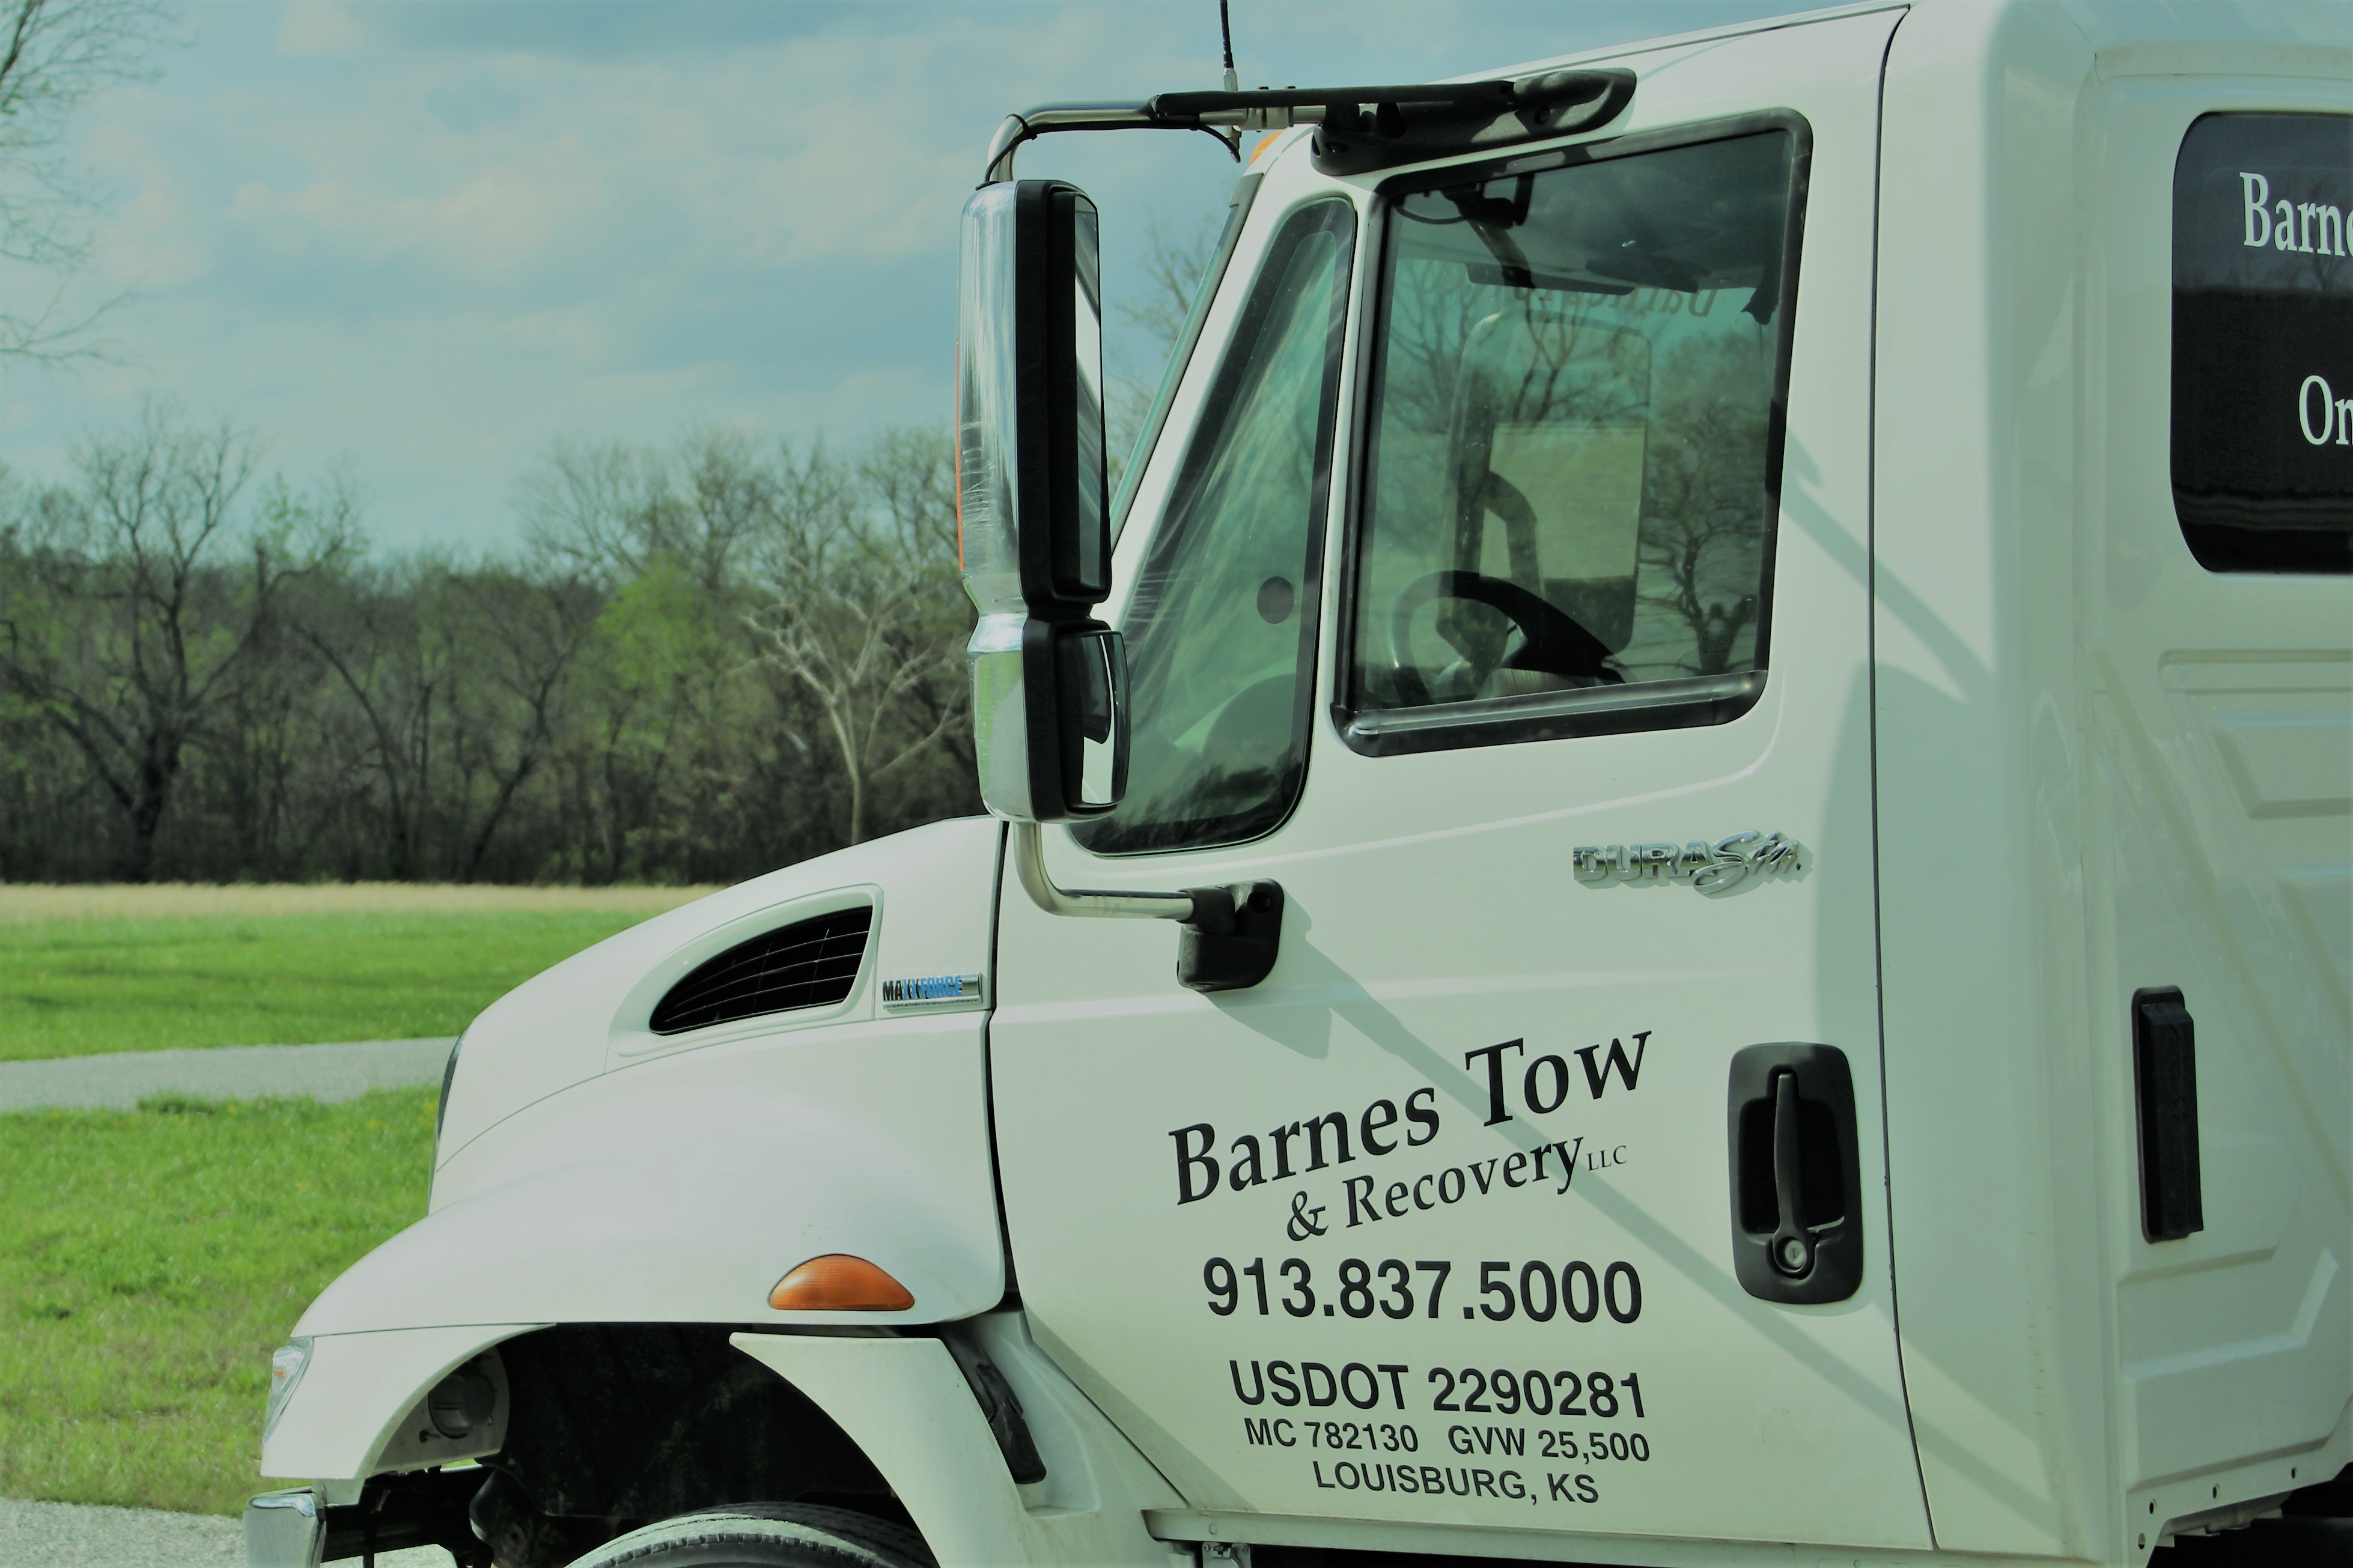 Barnes Tow & Recovery LLC image 0